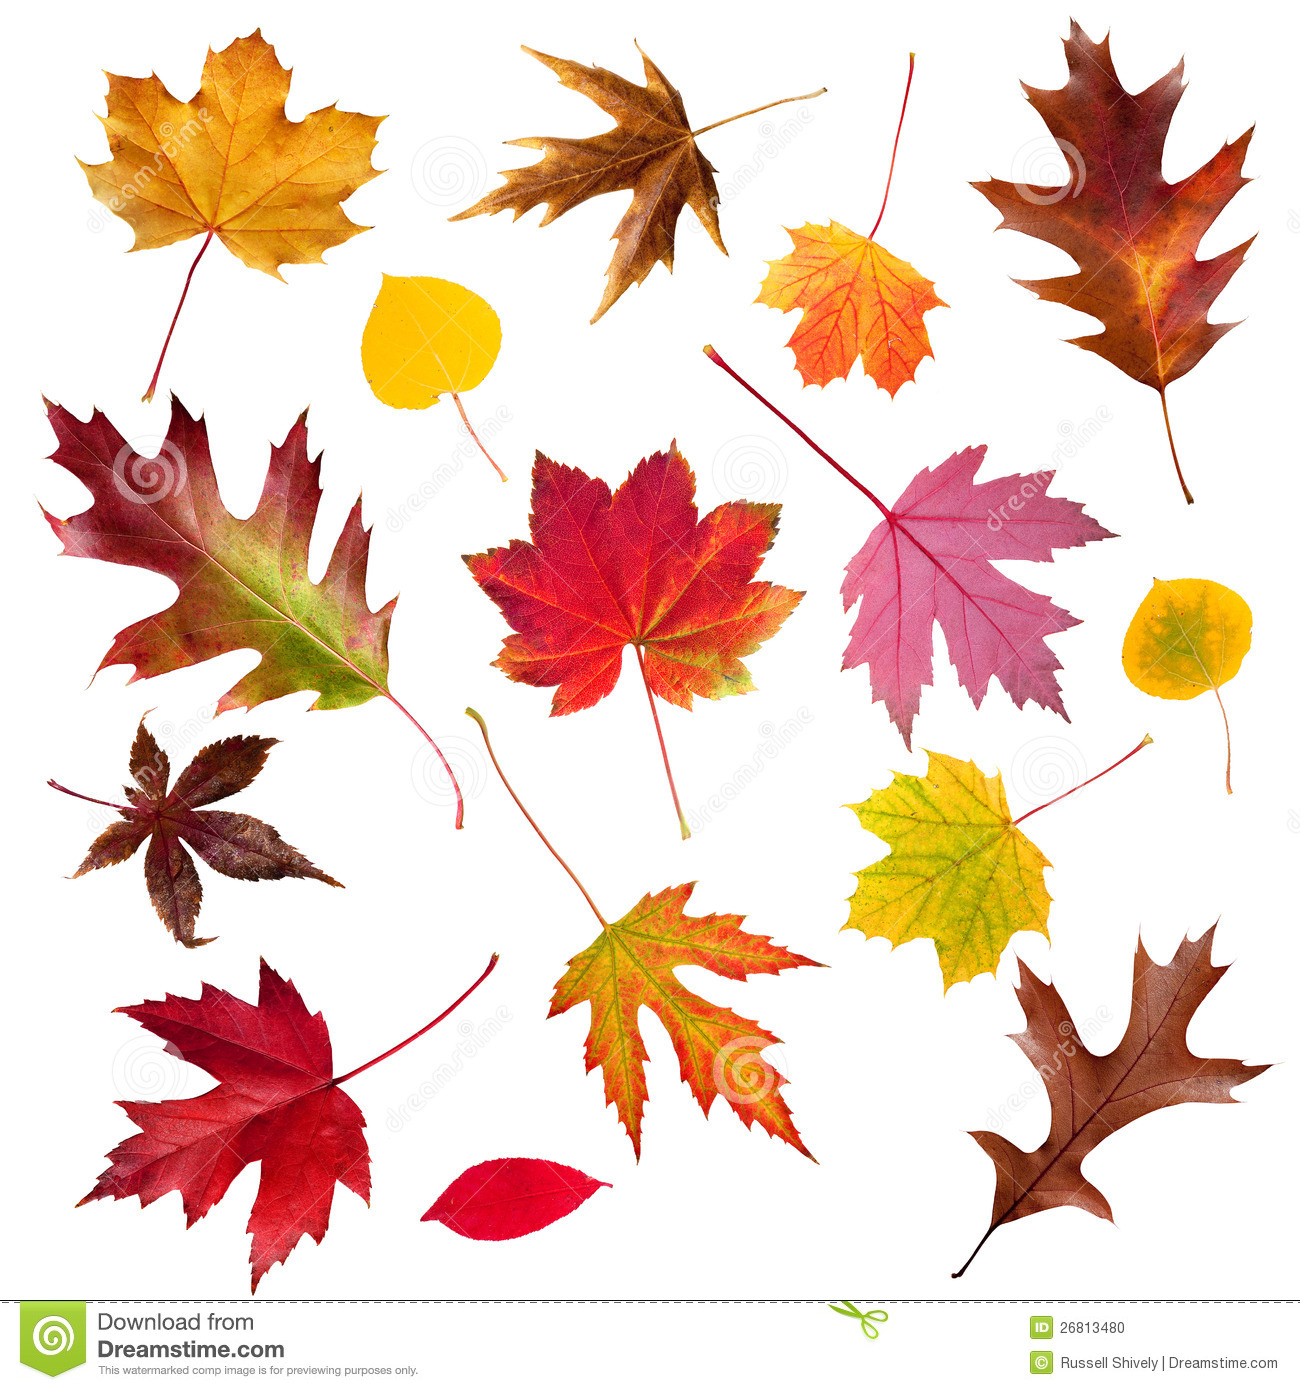 Autumn Tree Leaf Fall Animated Wallpaper Fall Leaf Collection Stock Photo Image 26813480